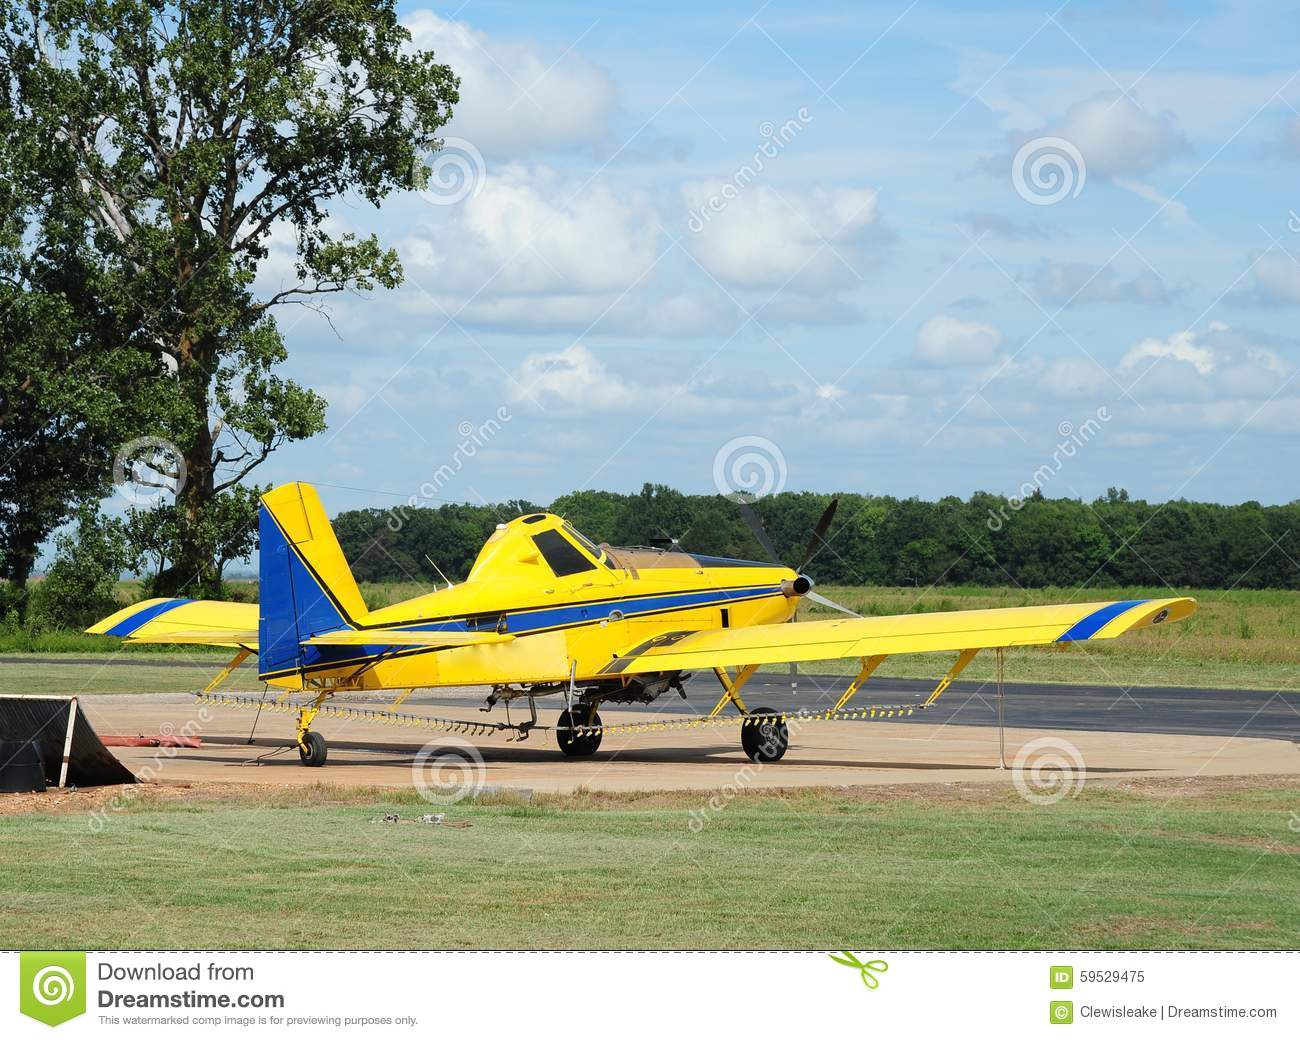 Crop Duster Airplane Stock Photo - Image: 33239340